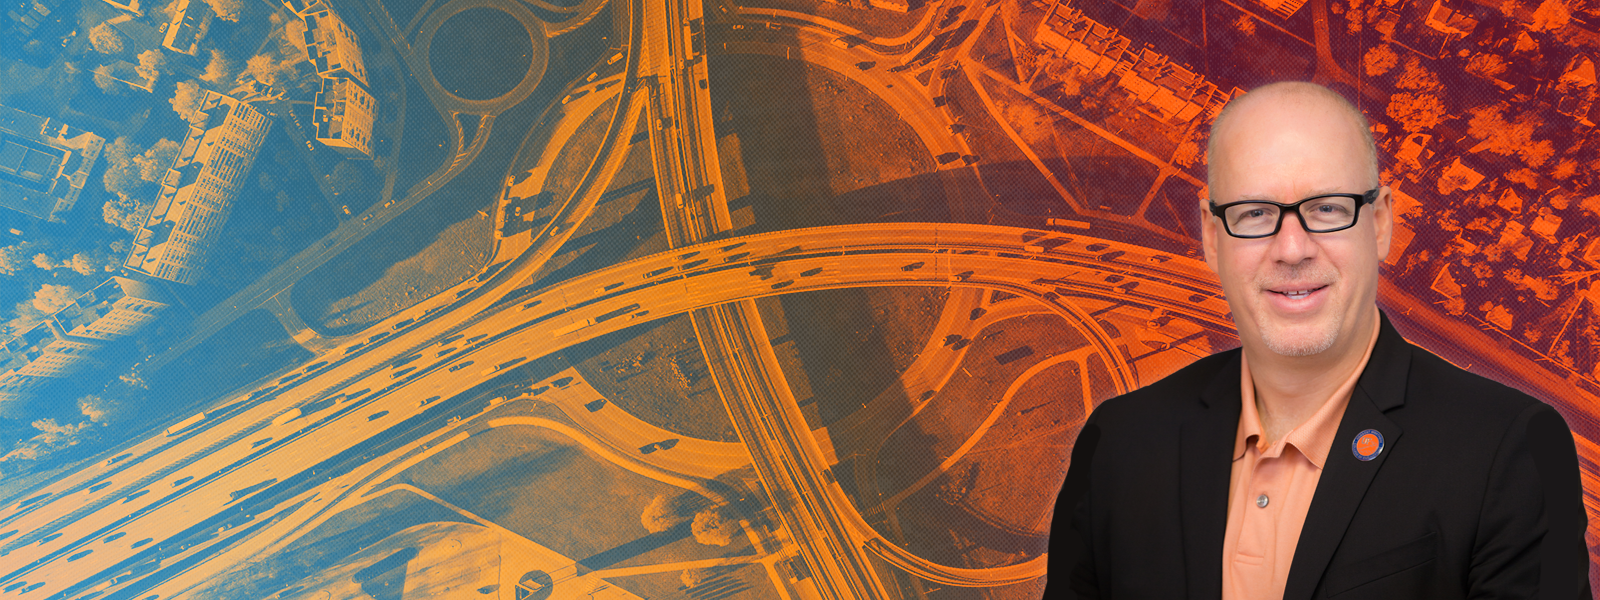 Dr. David Kaber's profile picture, superimposed over an aerial shot of roadways